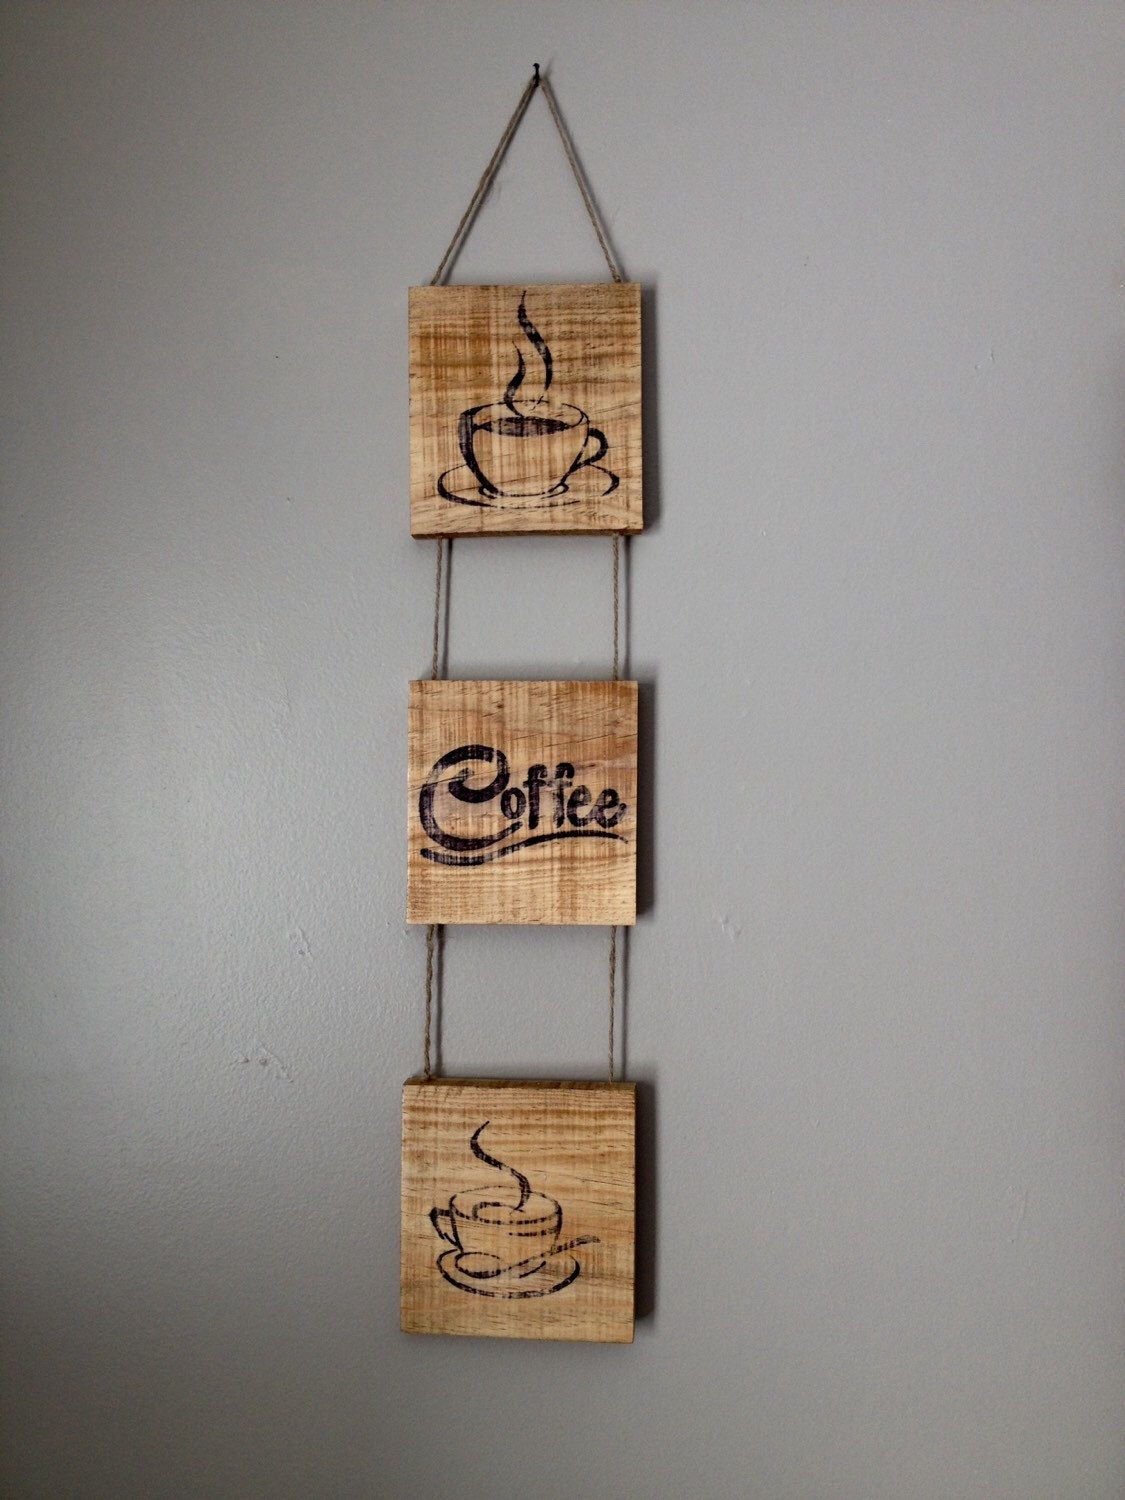 Coffee Wall Decor,Cafe Decor,Cafe Wall Decor,Coffee Sign,Coffee Station